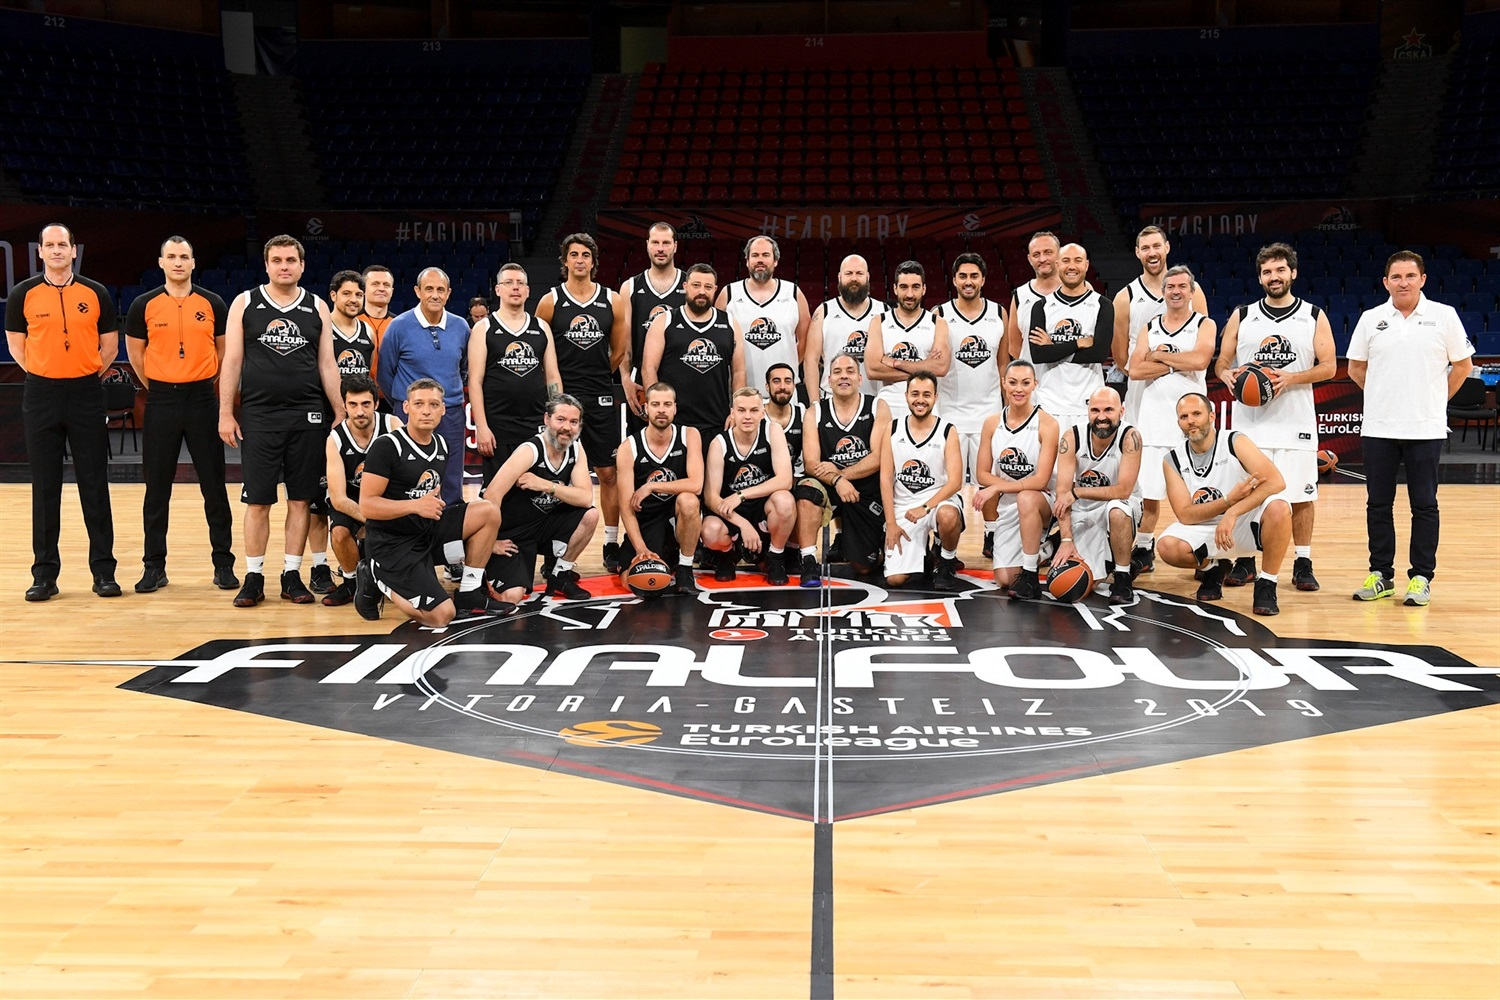 Media Game - Final Four Vitoria-Gasteiz 2019 - EB18